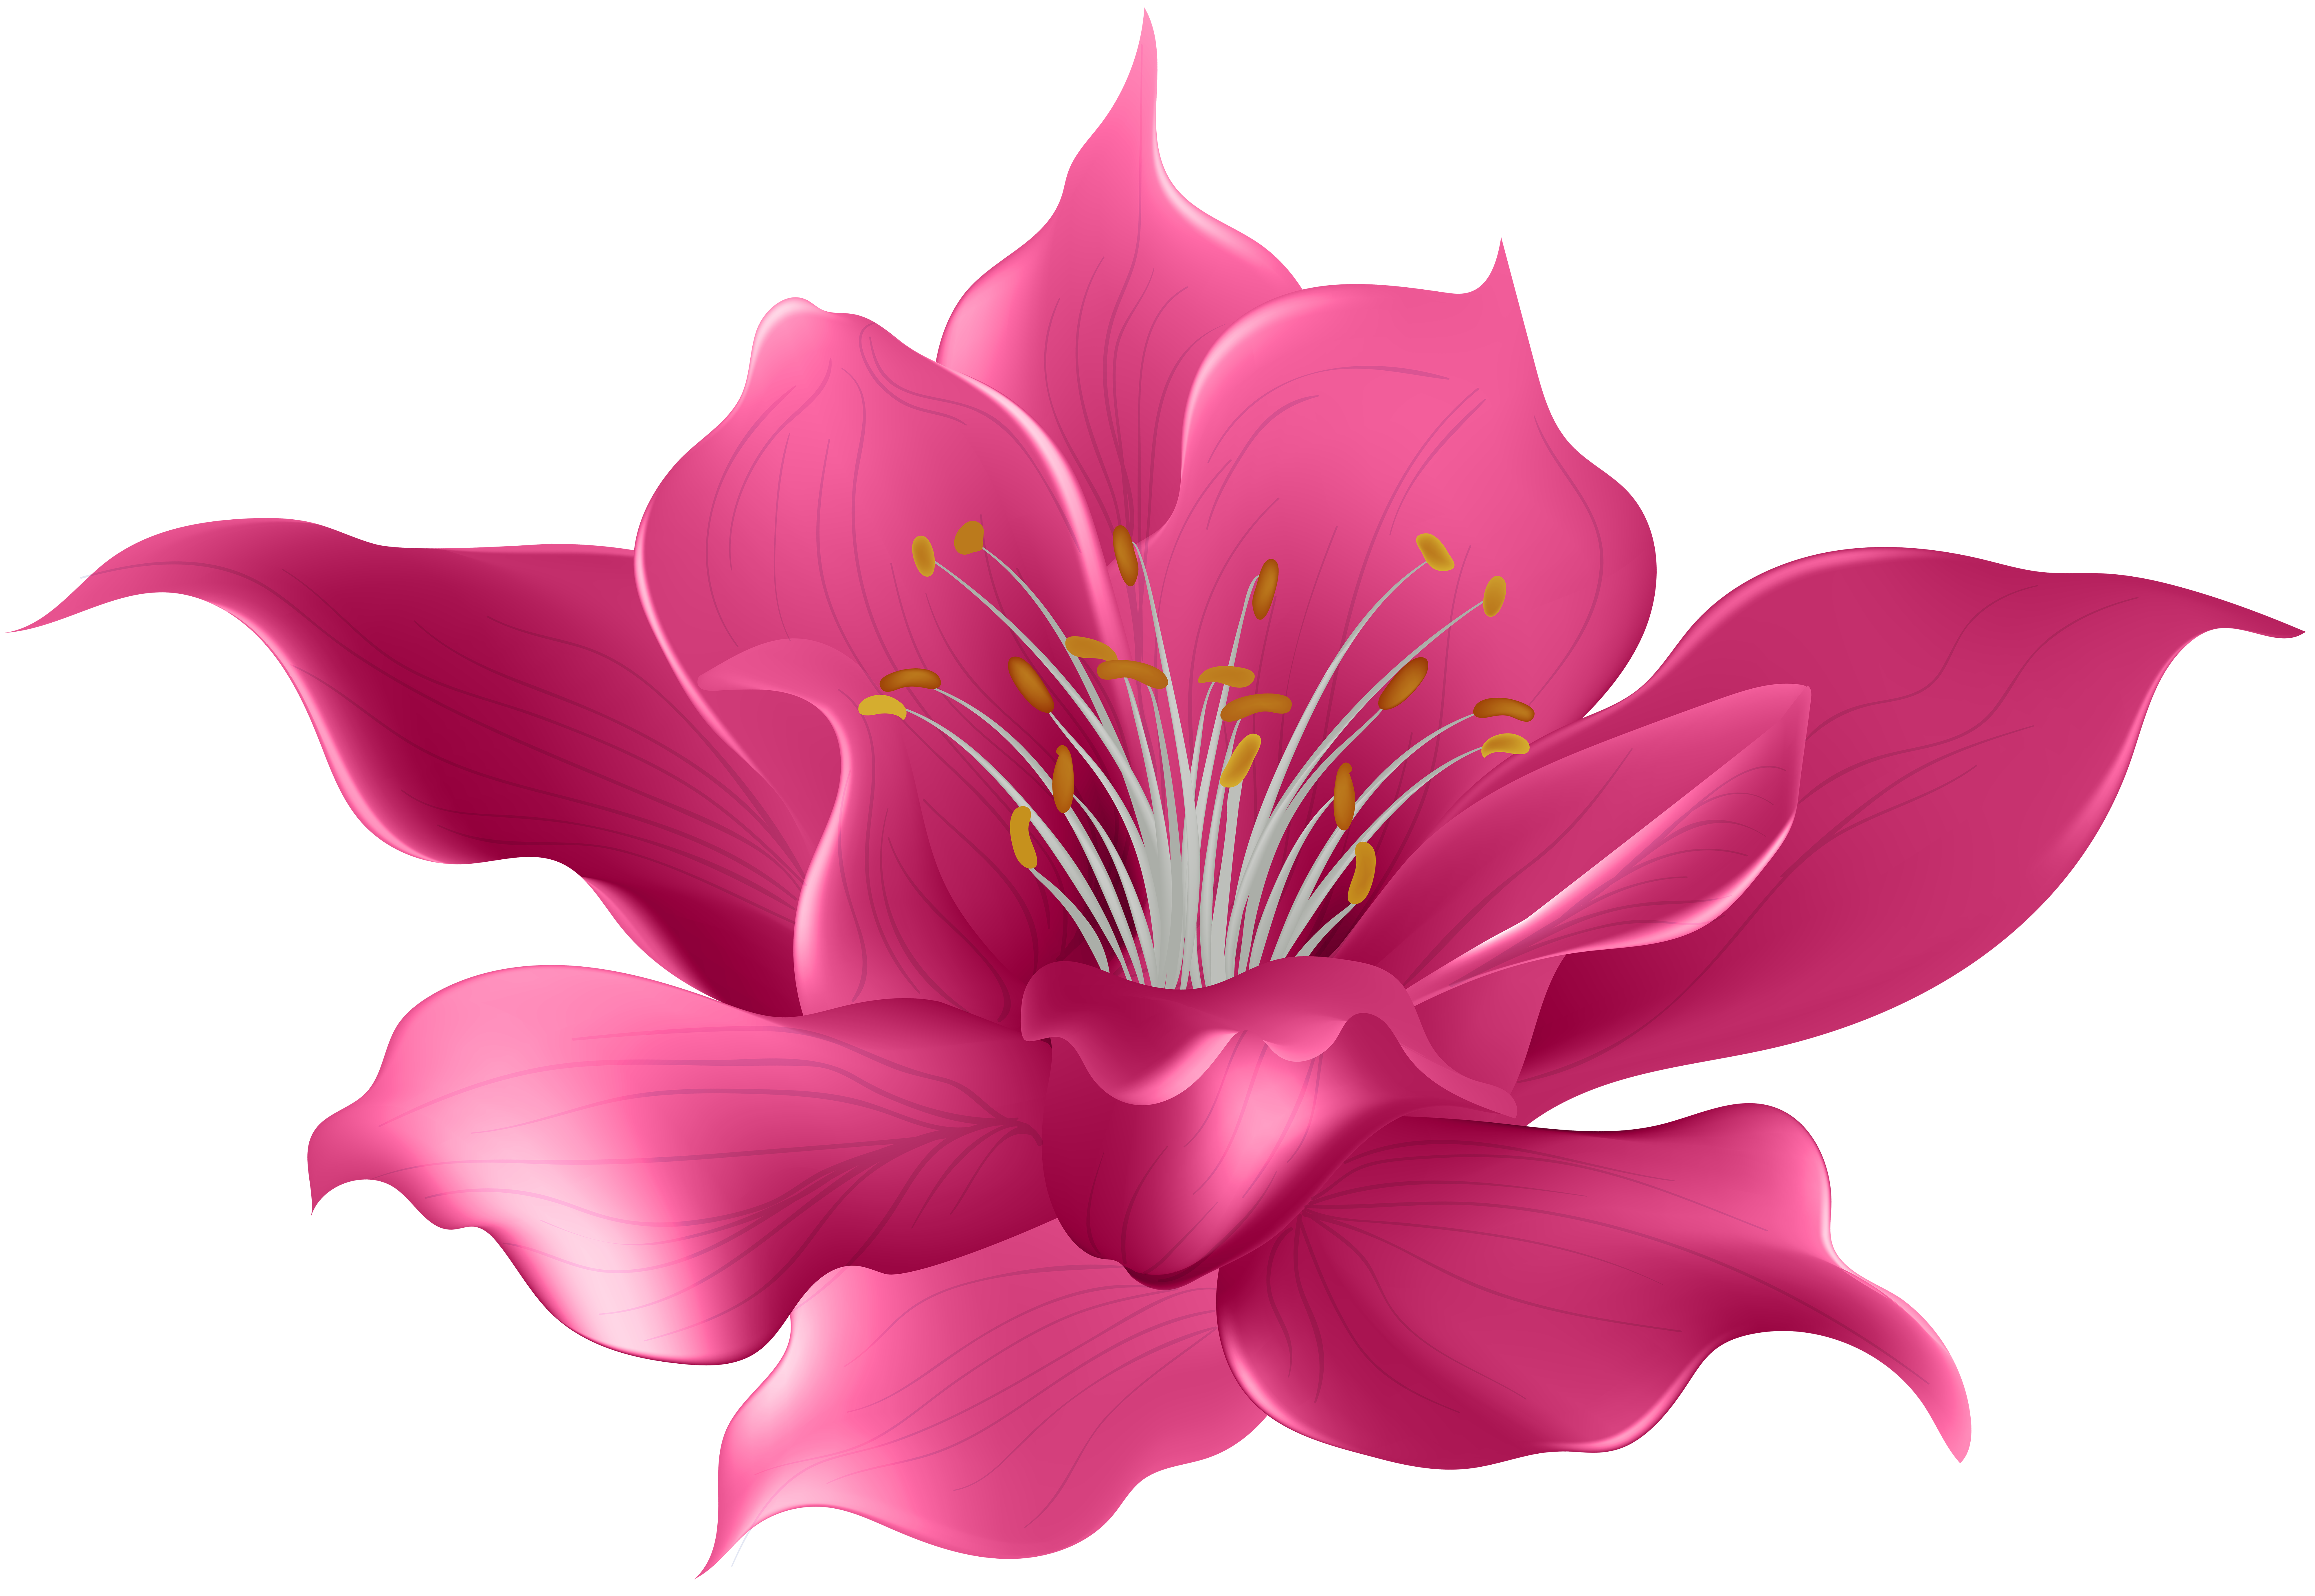 Transparent Flower Clipart | Free download on ClipArtMag